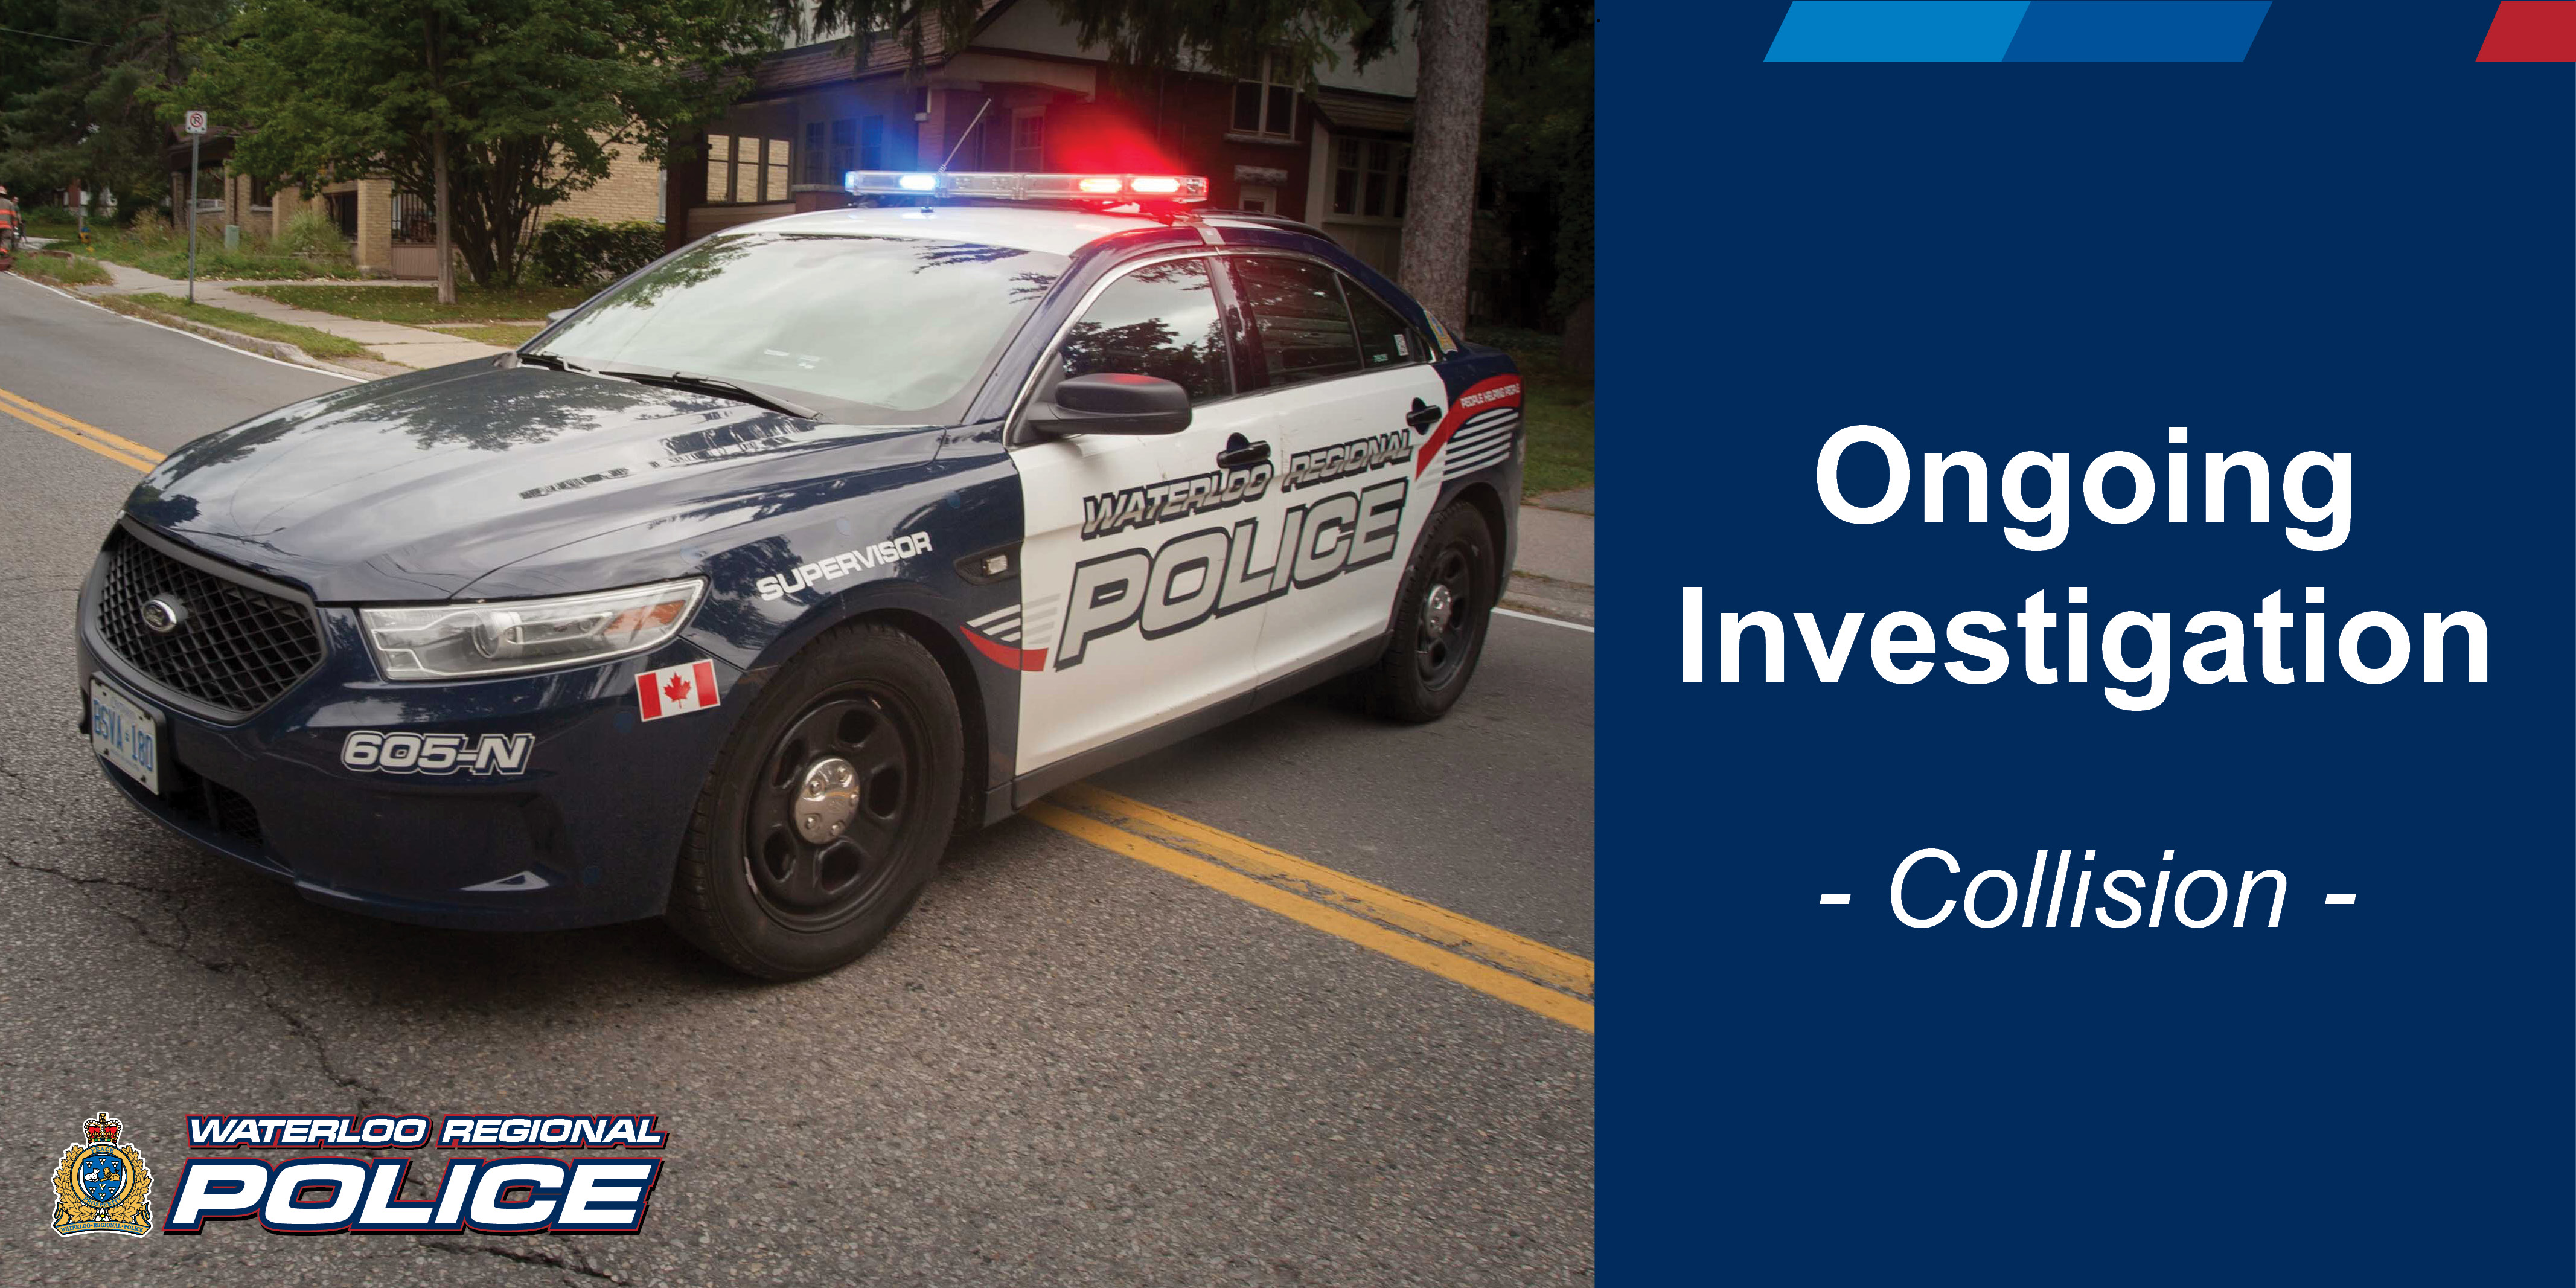 Media Release - Ongoing Collision Investigation